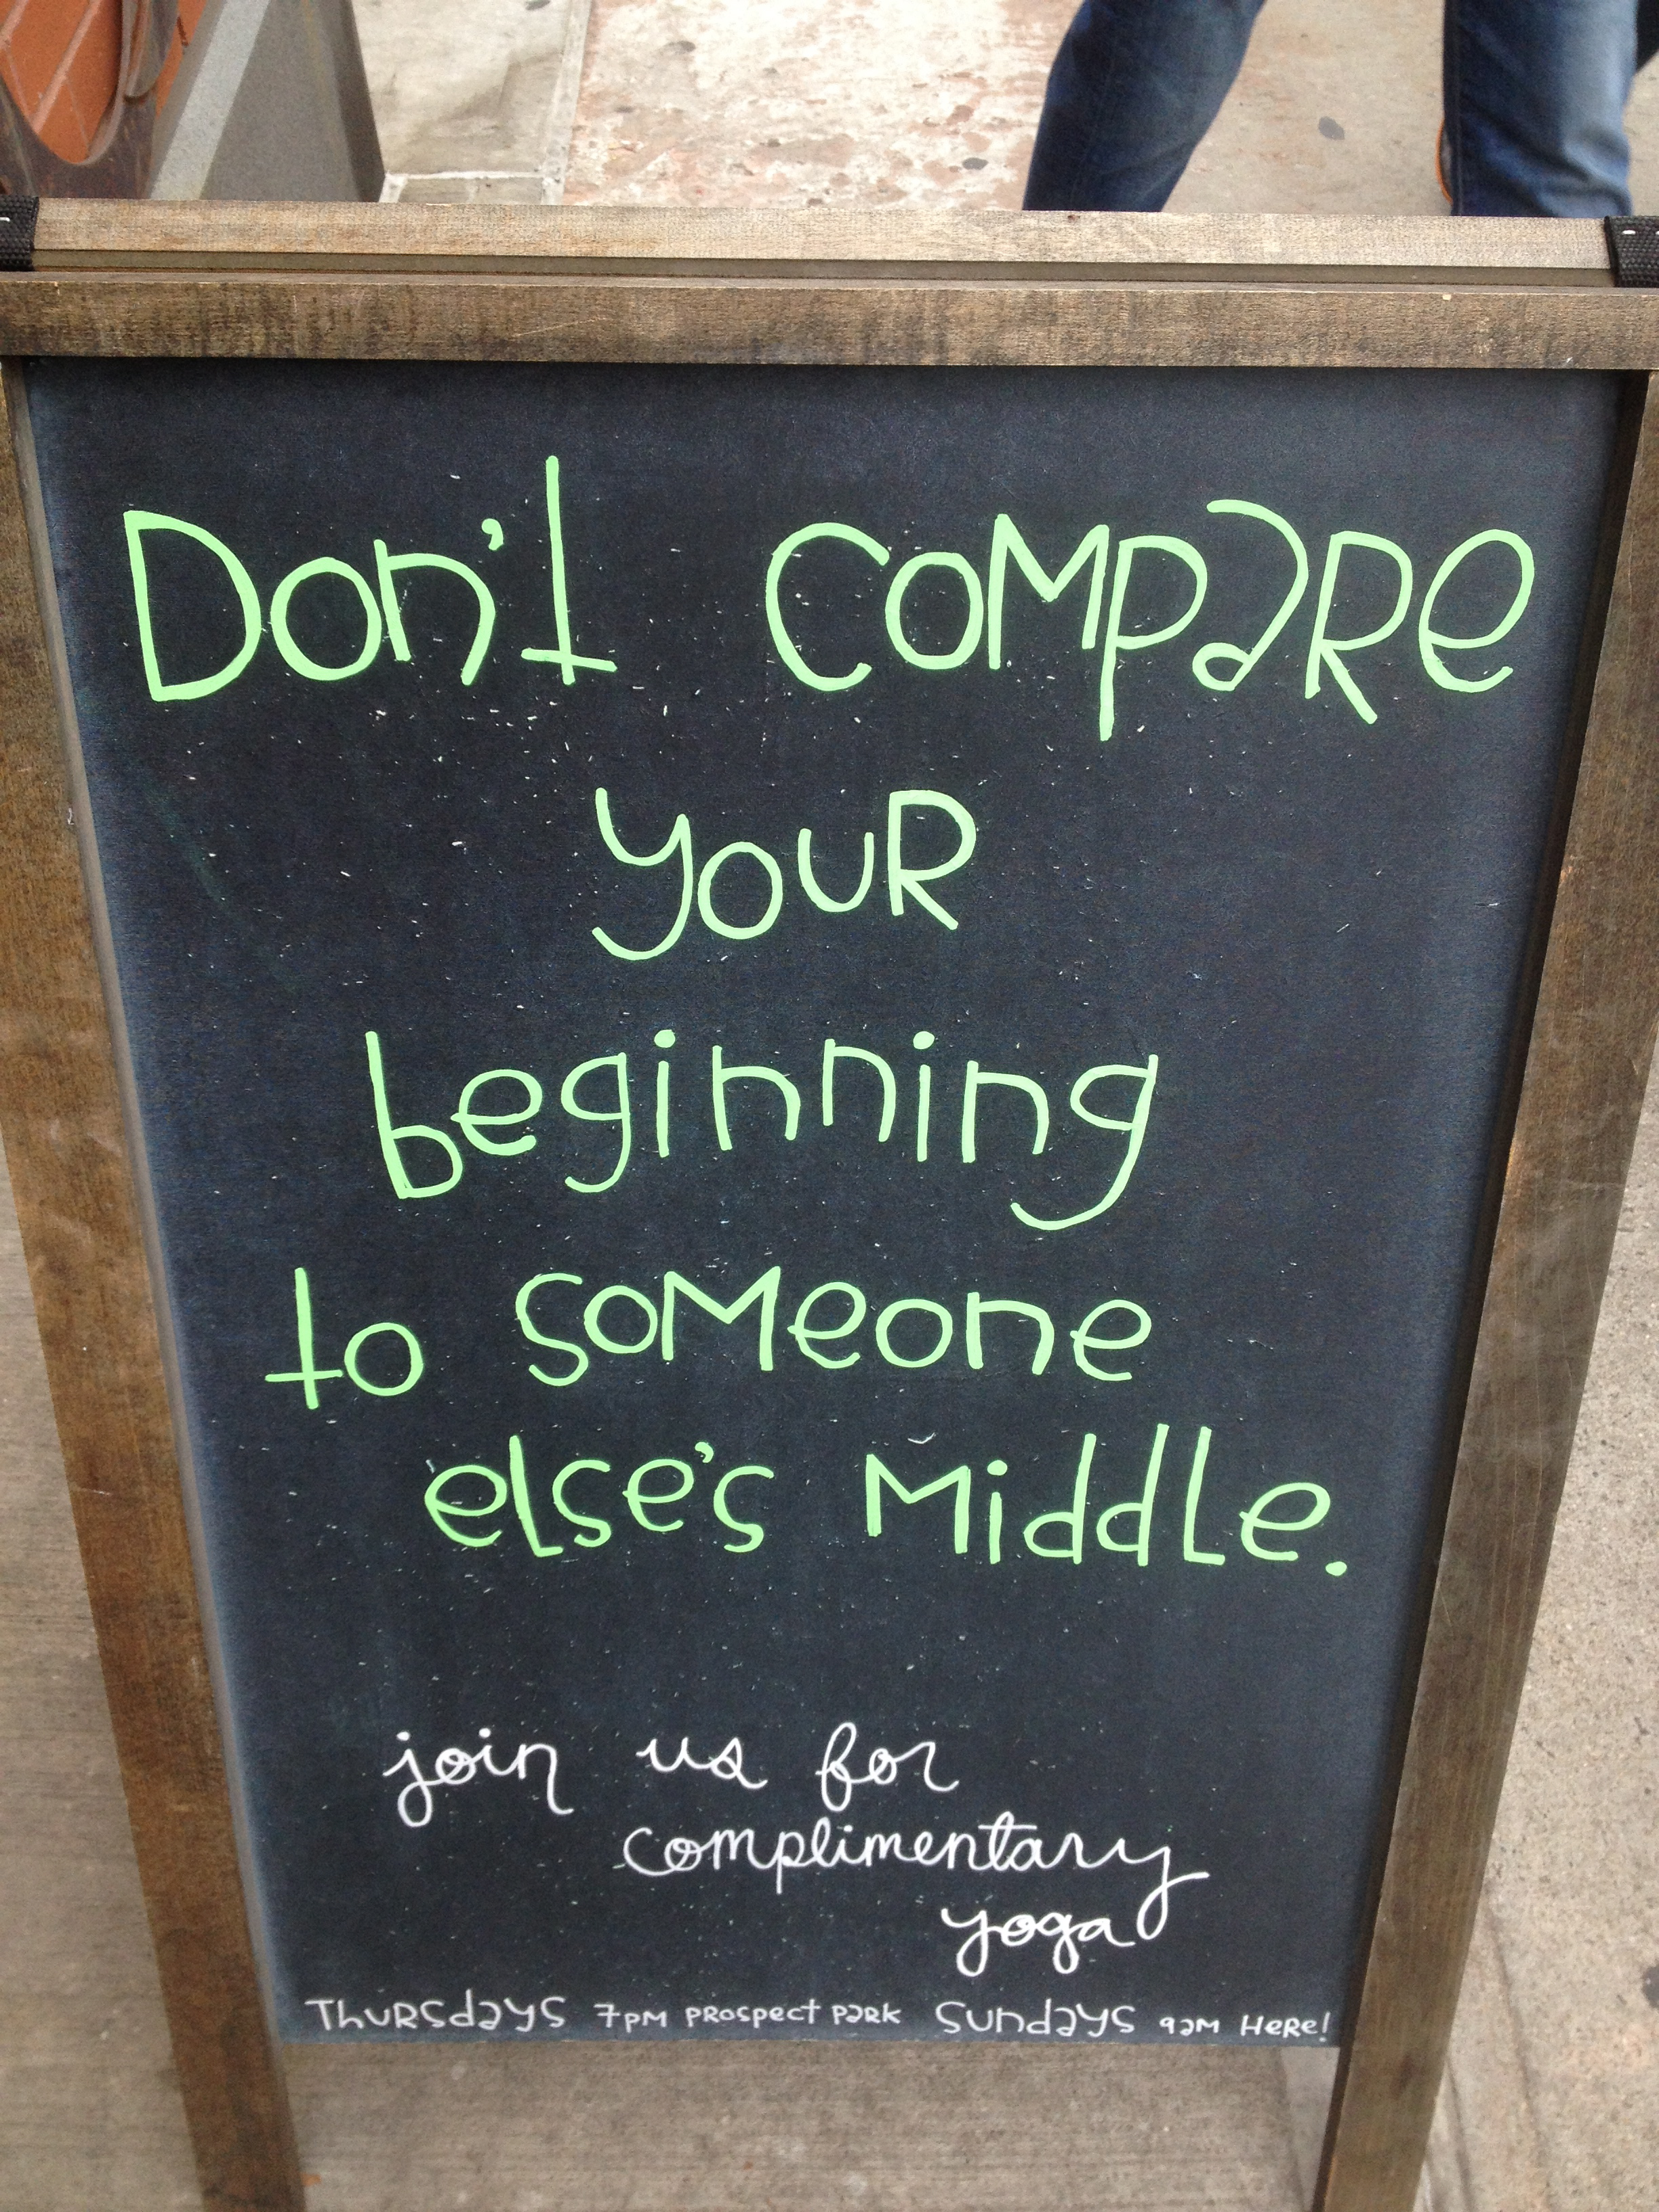 Loved this! It was set up outside of the Lululemon store nearby where I live.